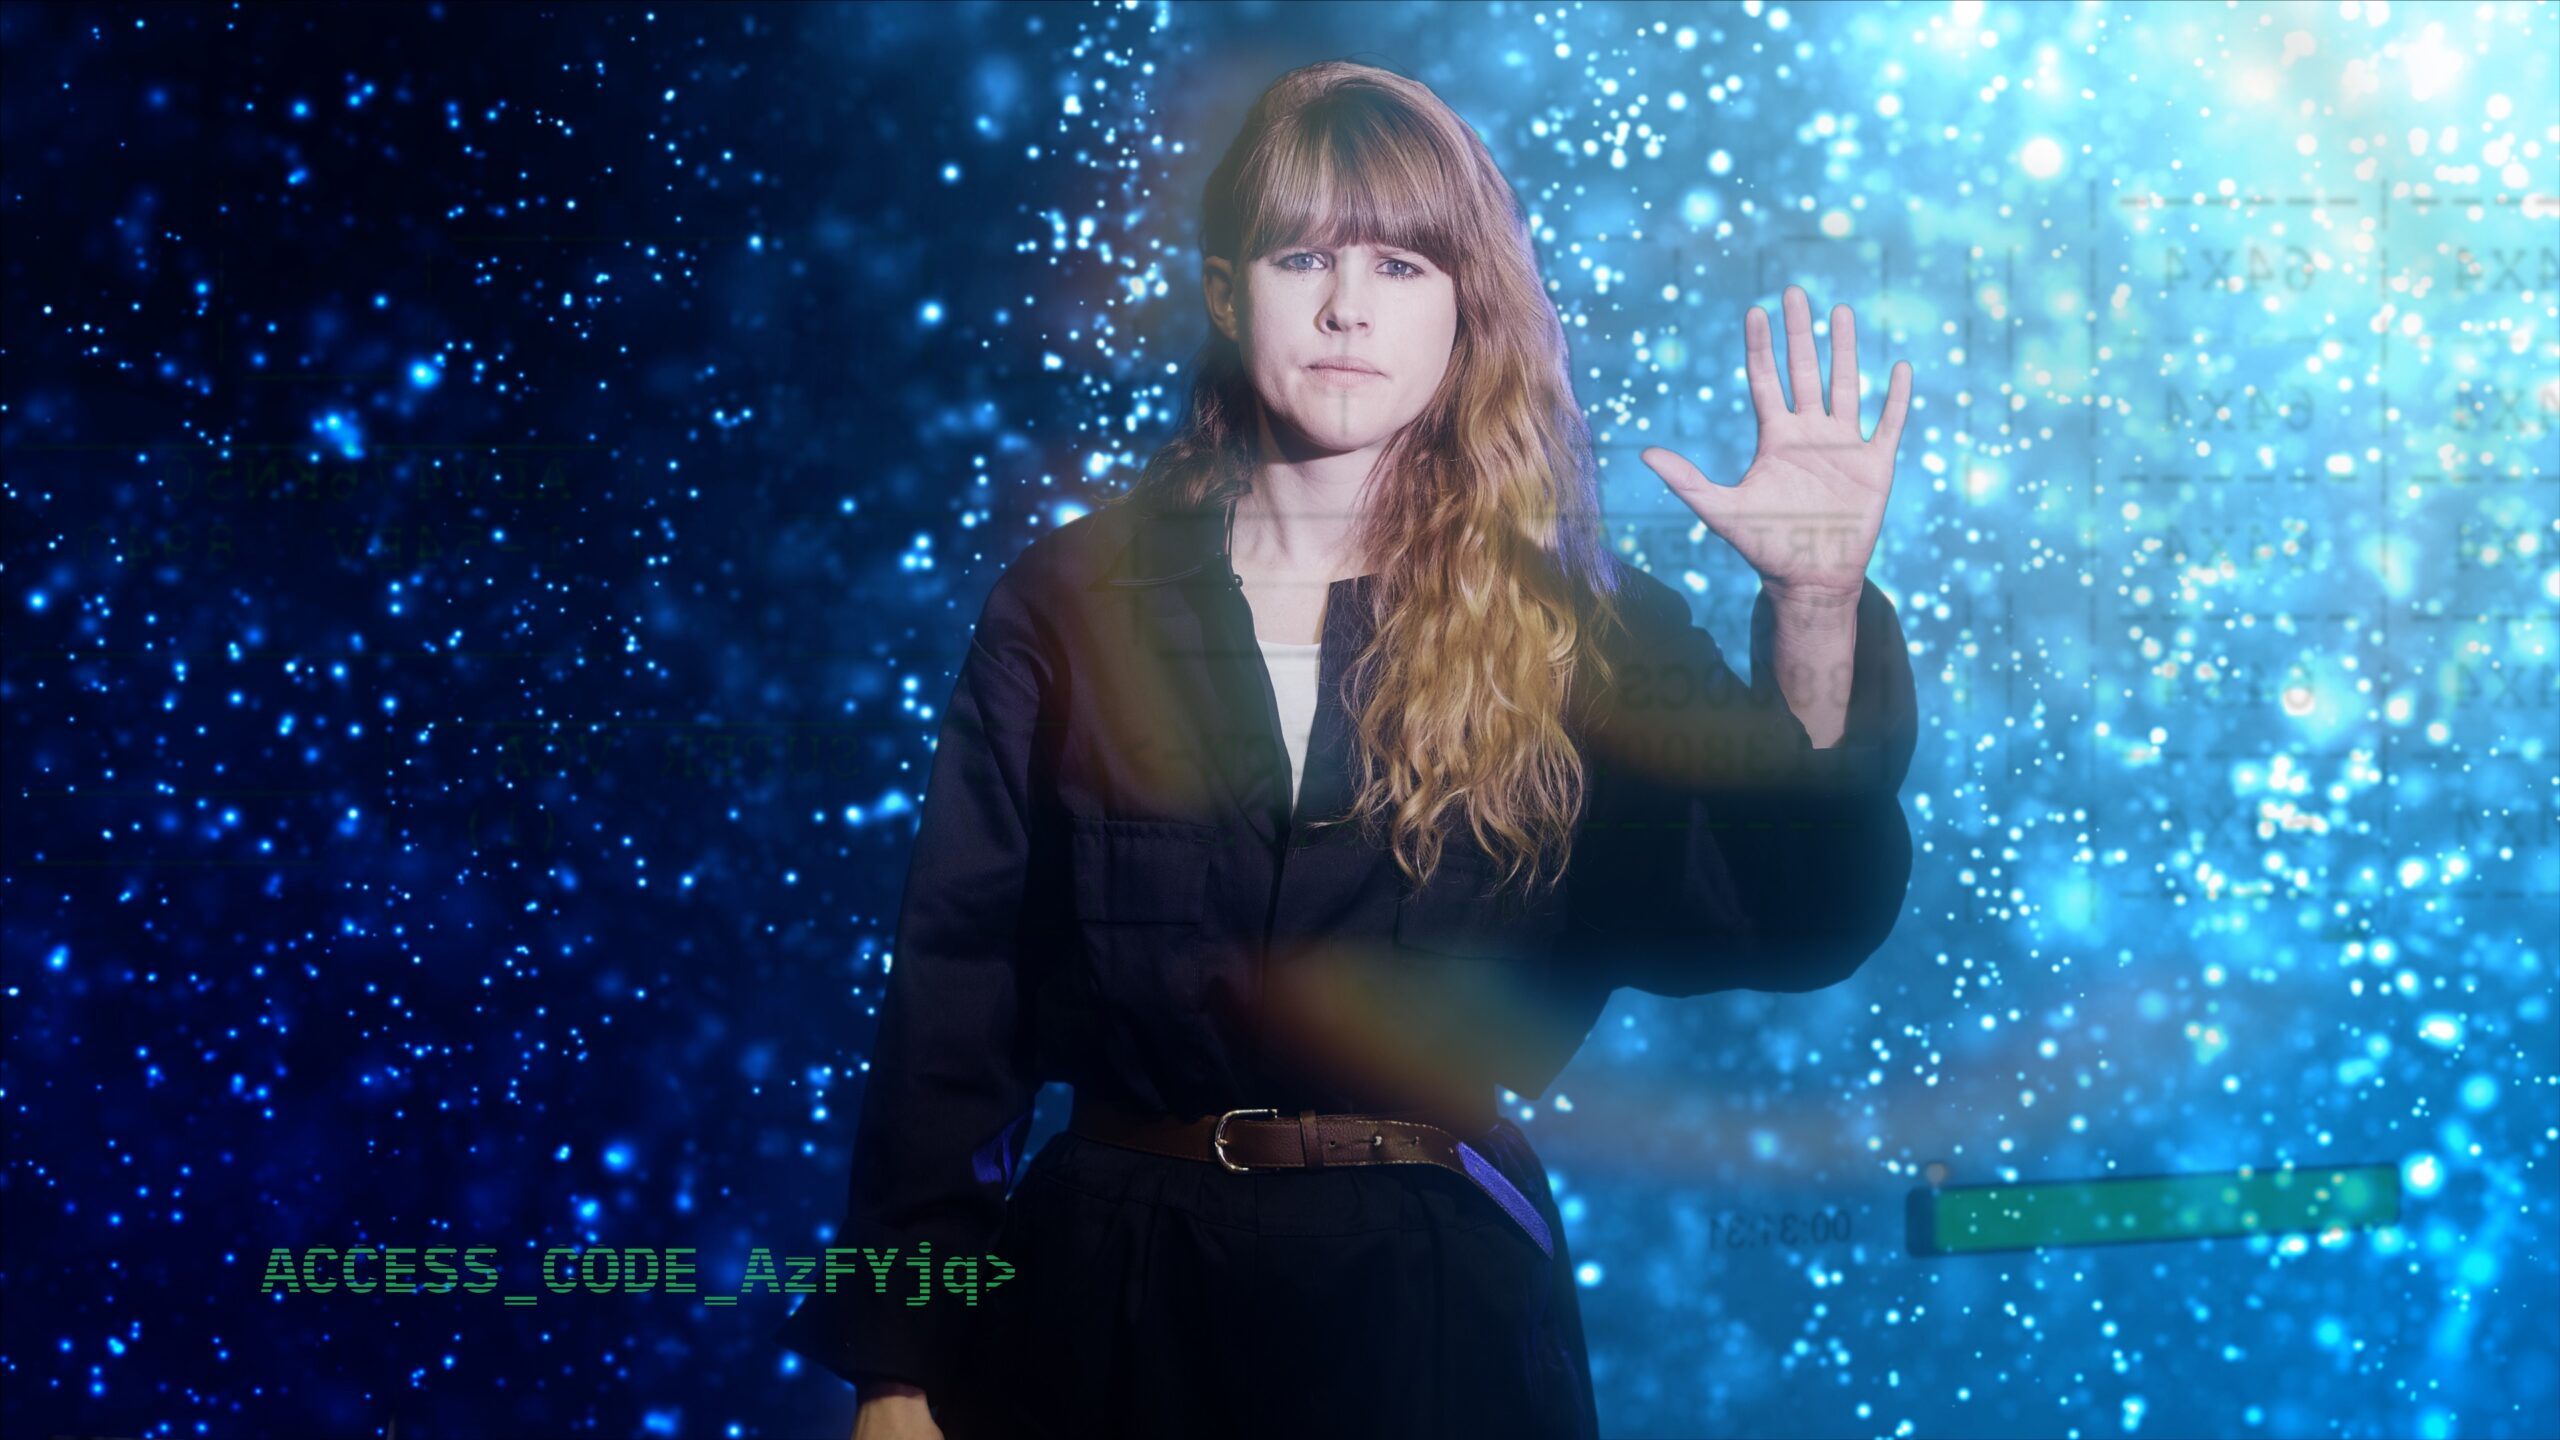 A white woman with long ginger hair in a black jumpsuit holds her palm out. She is set against a futuristic background of blue light